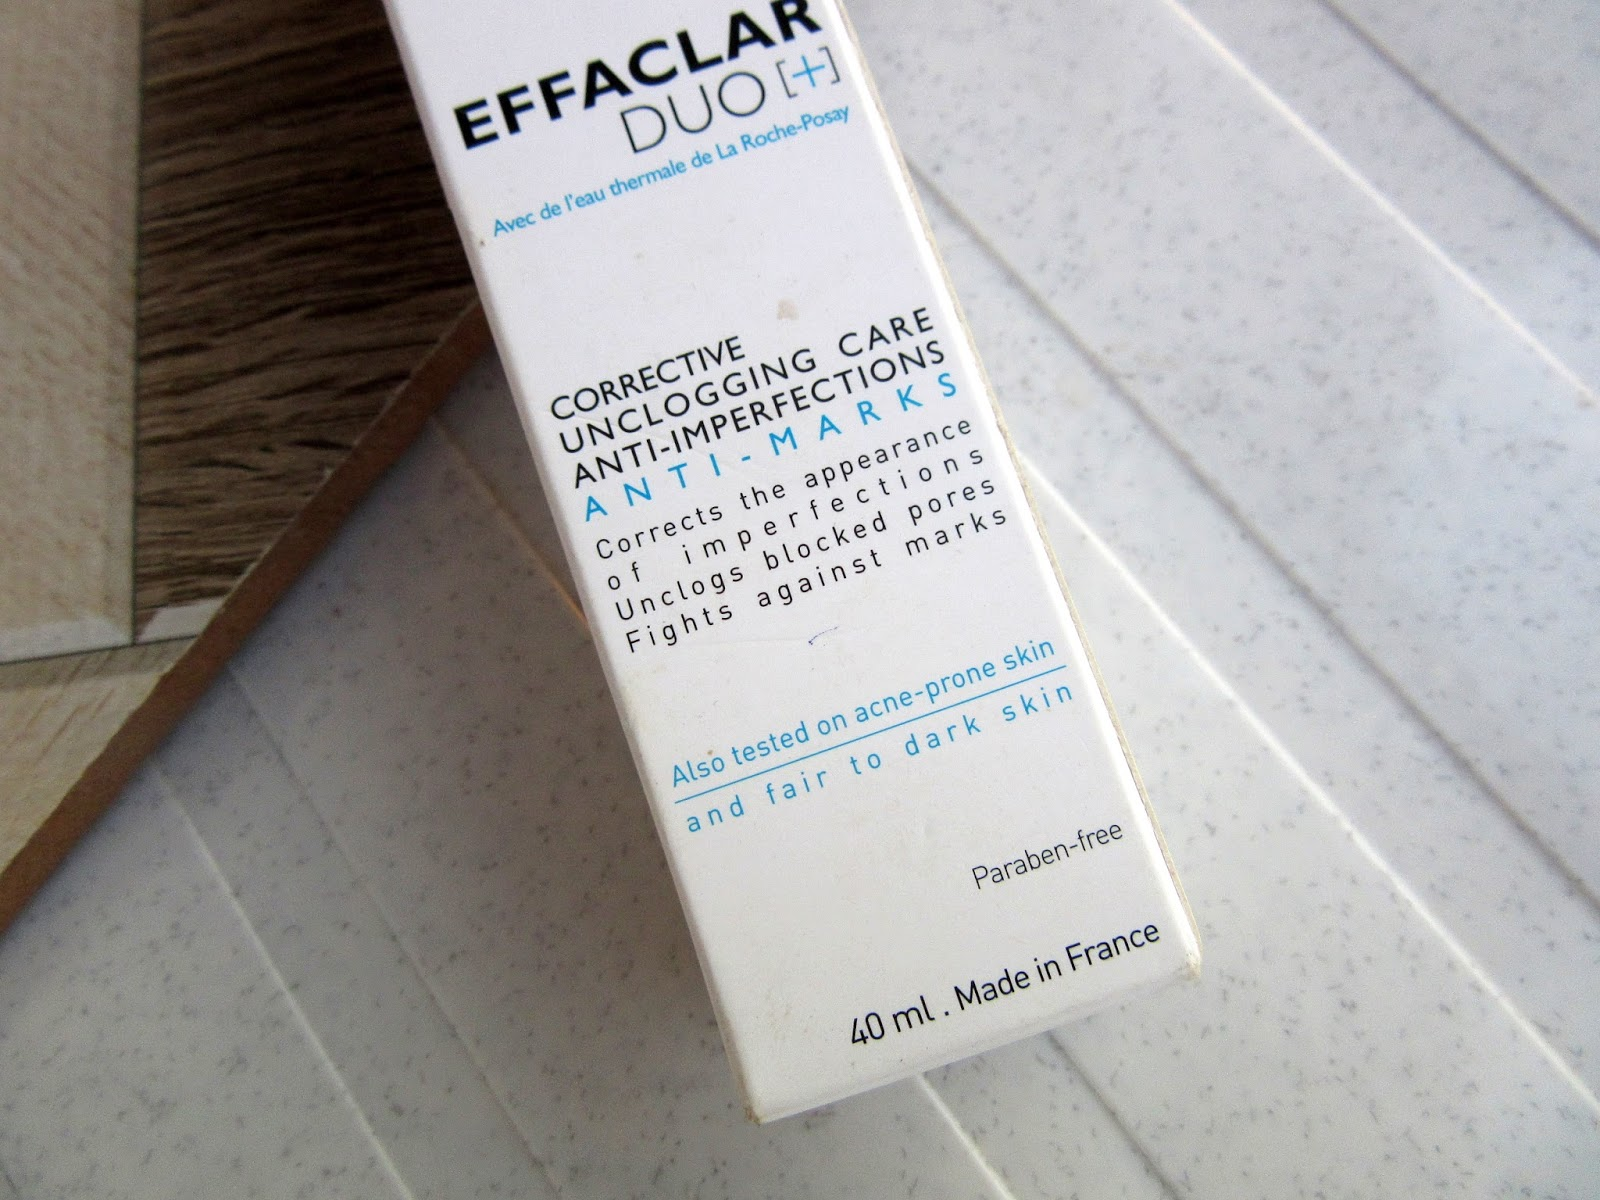 La Roche Posay Effaclar Duo[+] Review, Price, How To Use